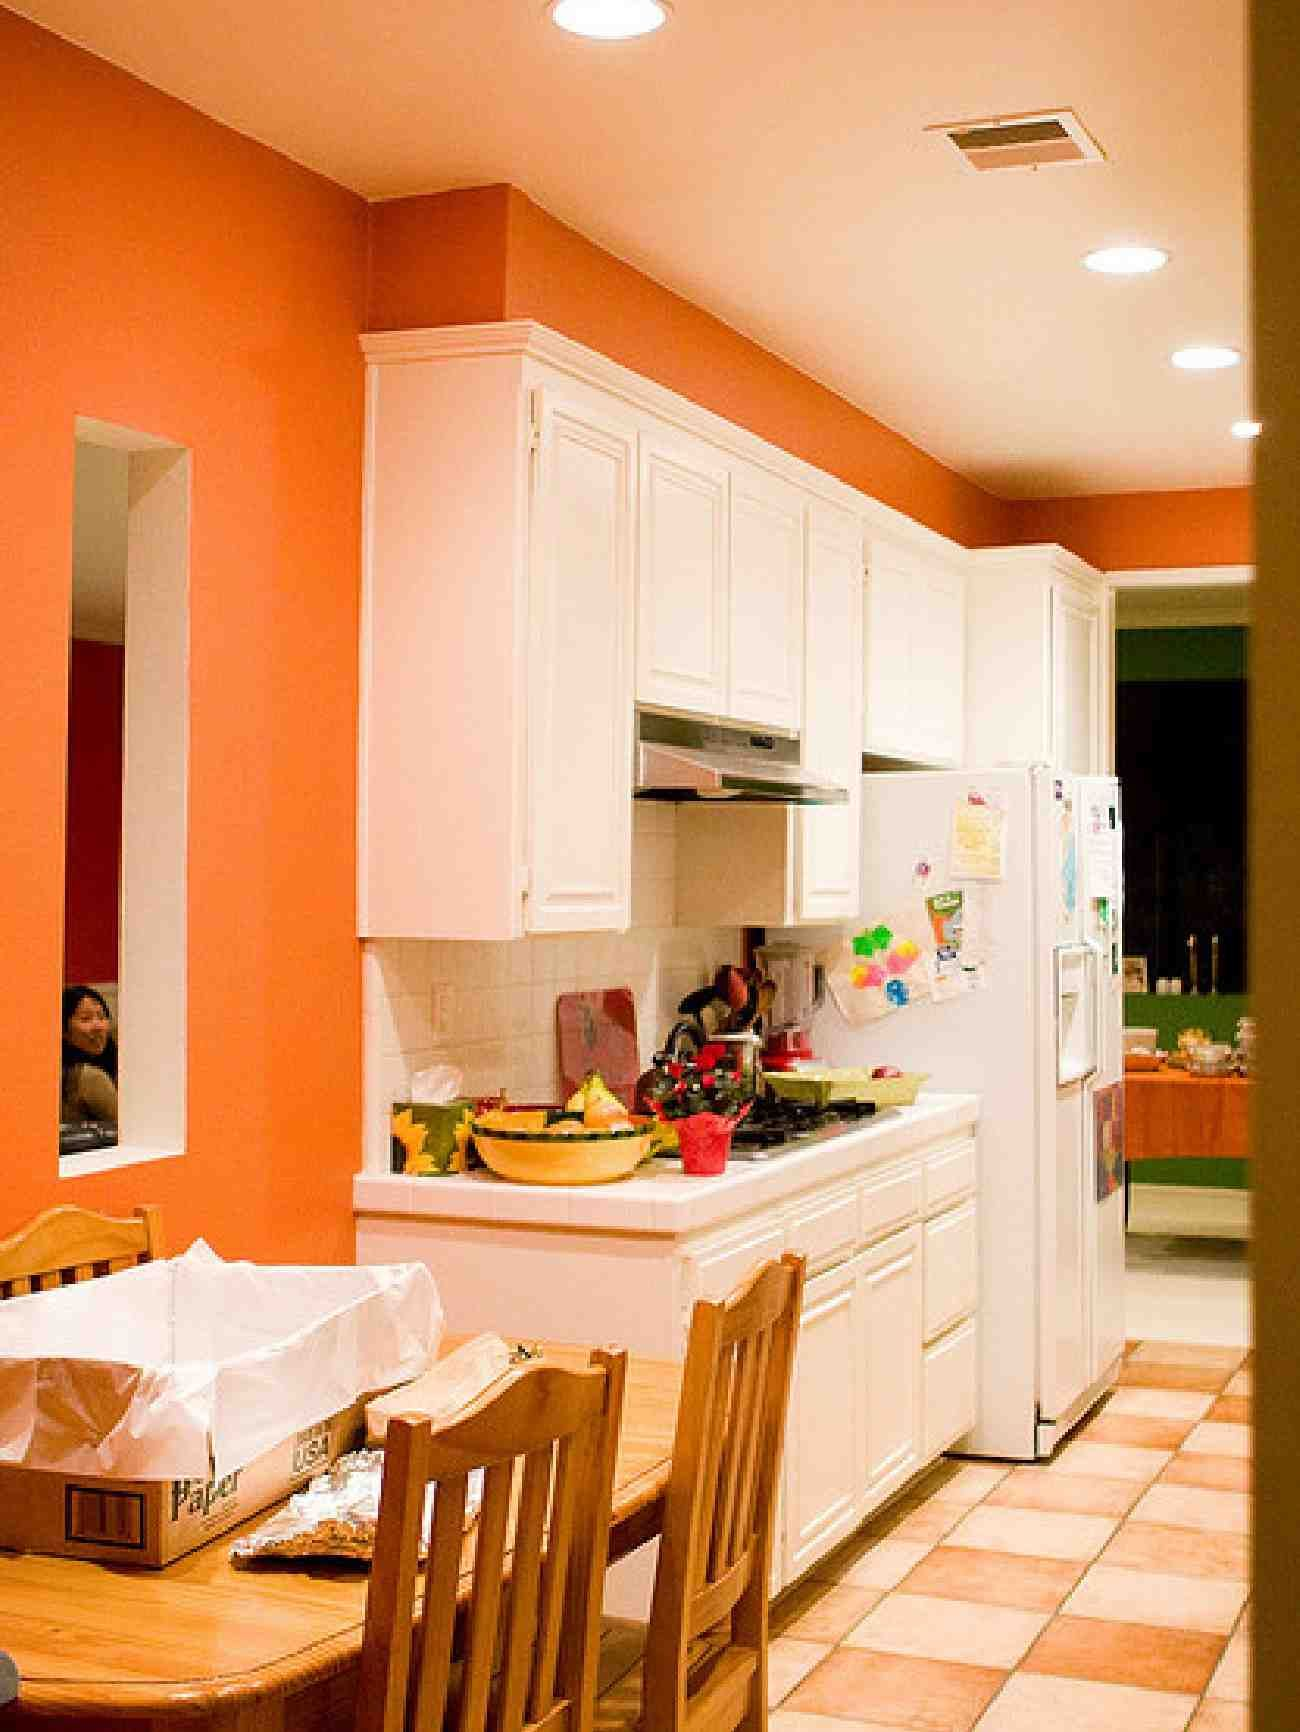 Applying 16 Bright Kitchen Paint Colors Orange Kitchen Walls